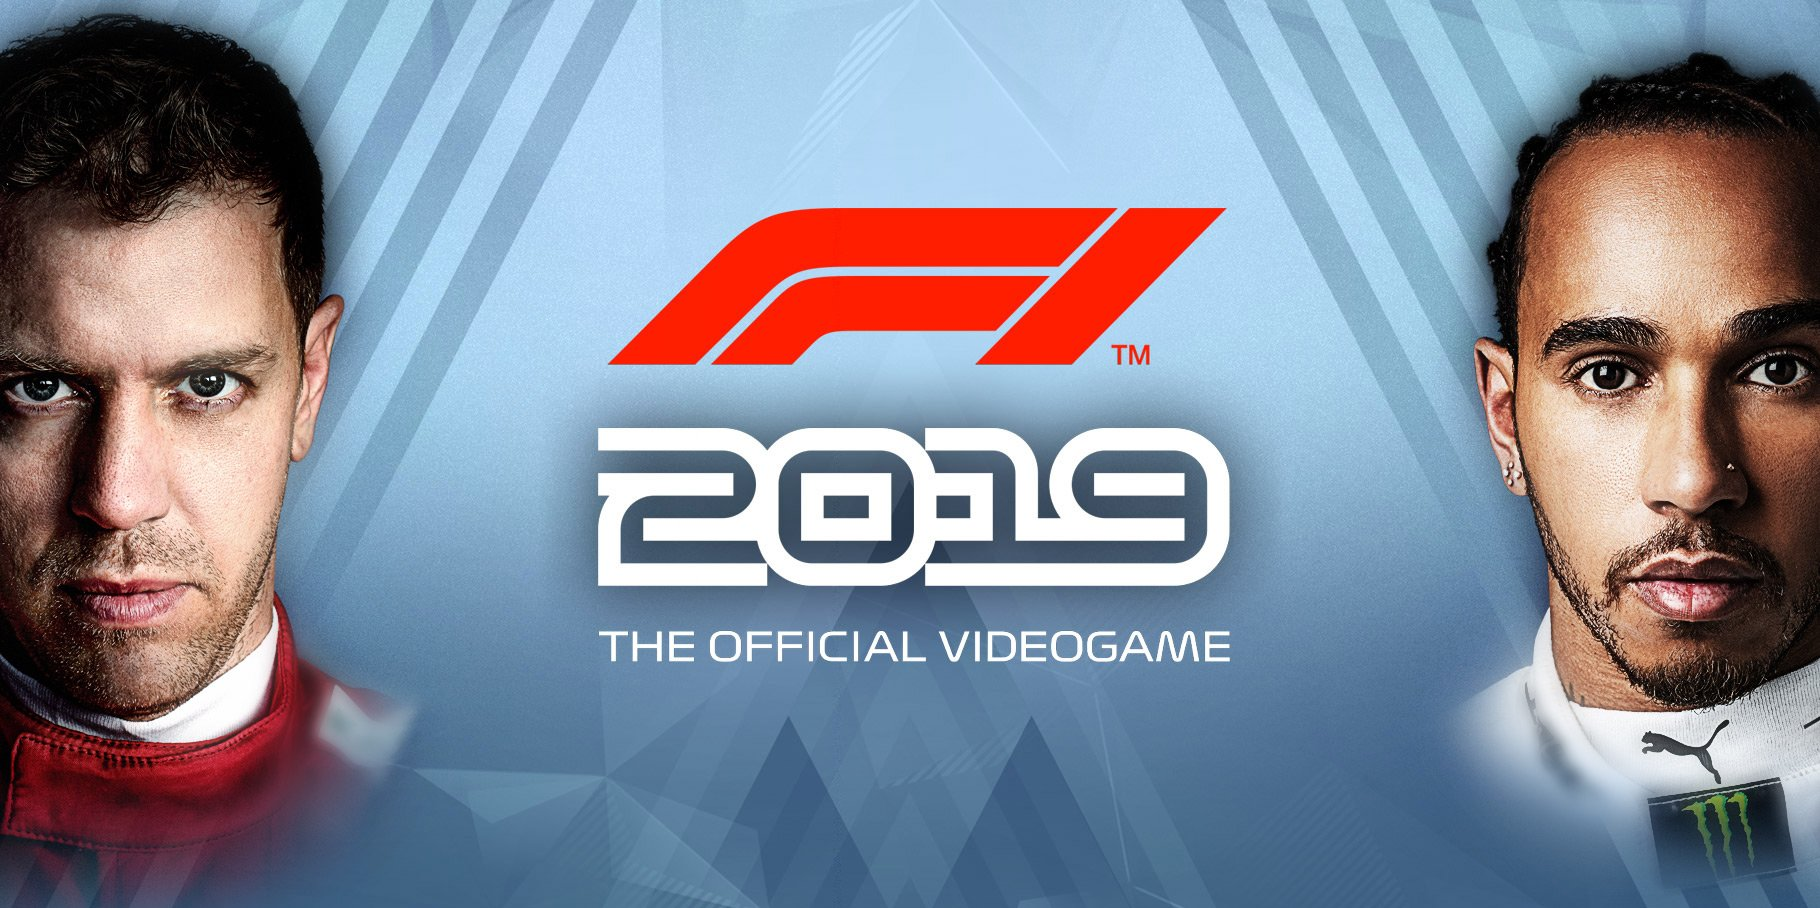 F1 2019 Xbox One Version Full Game Free Download Release June